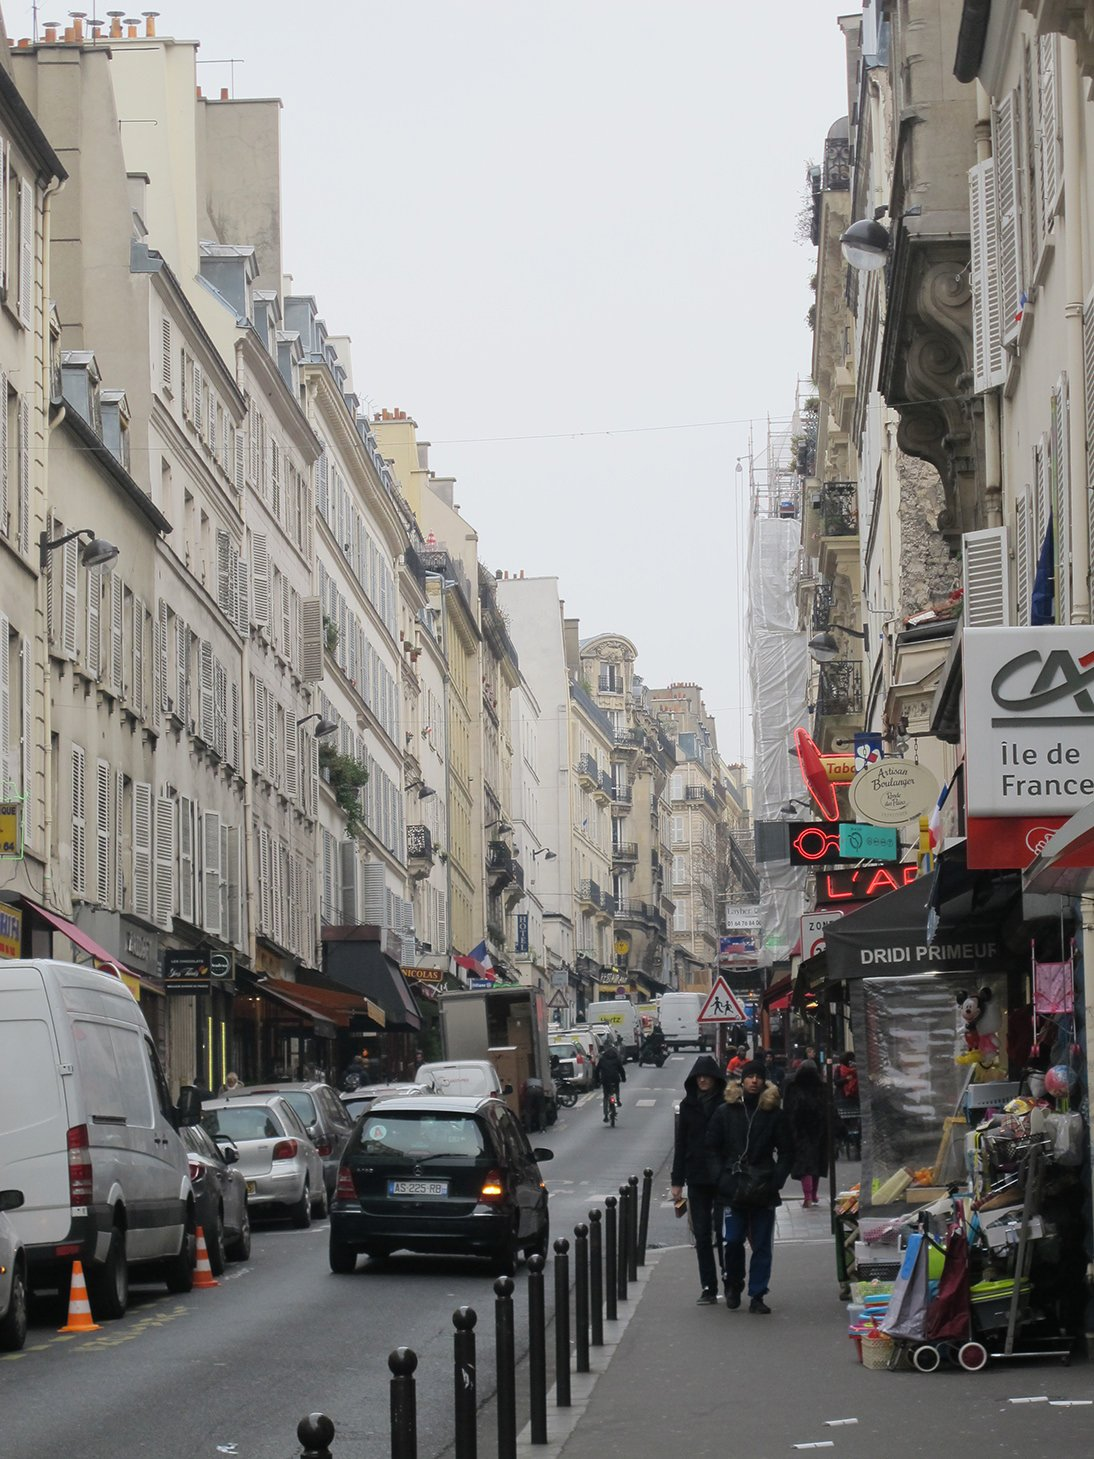 Rue des Martyrs, Paris, France, travel